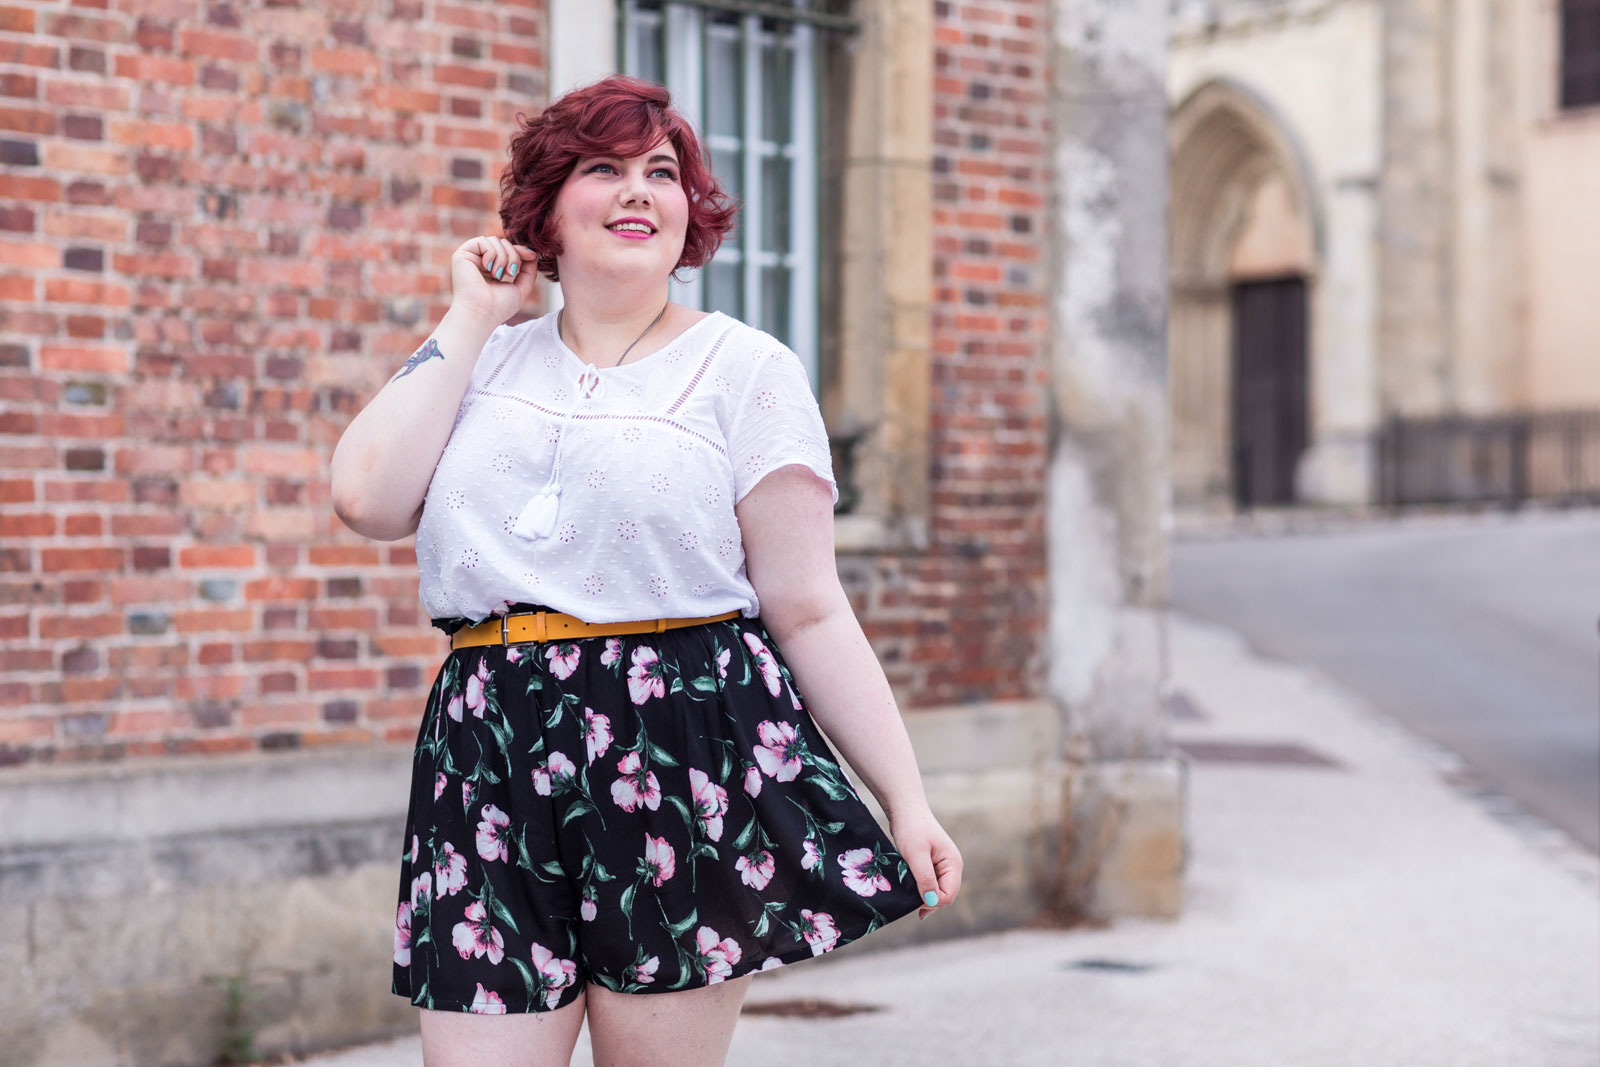 Ninaah Bulles, mode, look, jupe culotte, givenchy, gain de malice, shein, grande taille, plus, plus size, curvy, blogueuse